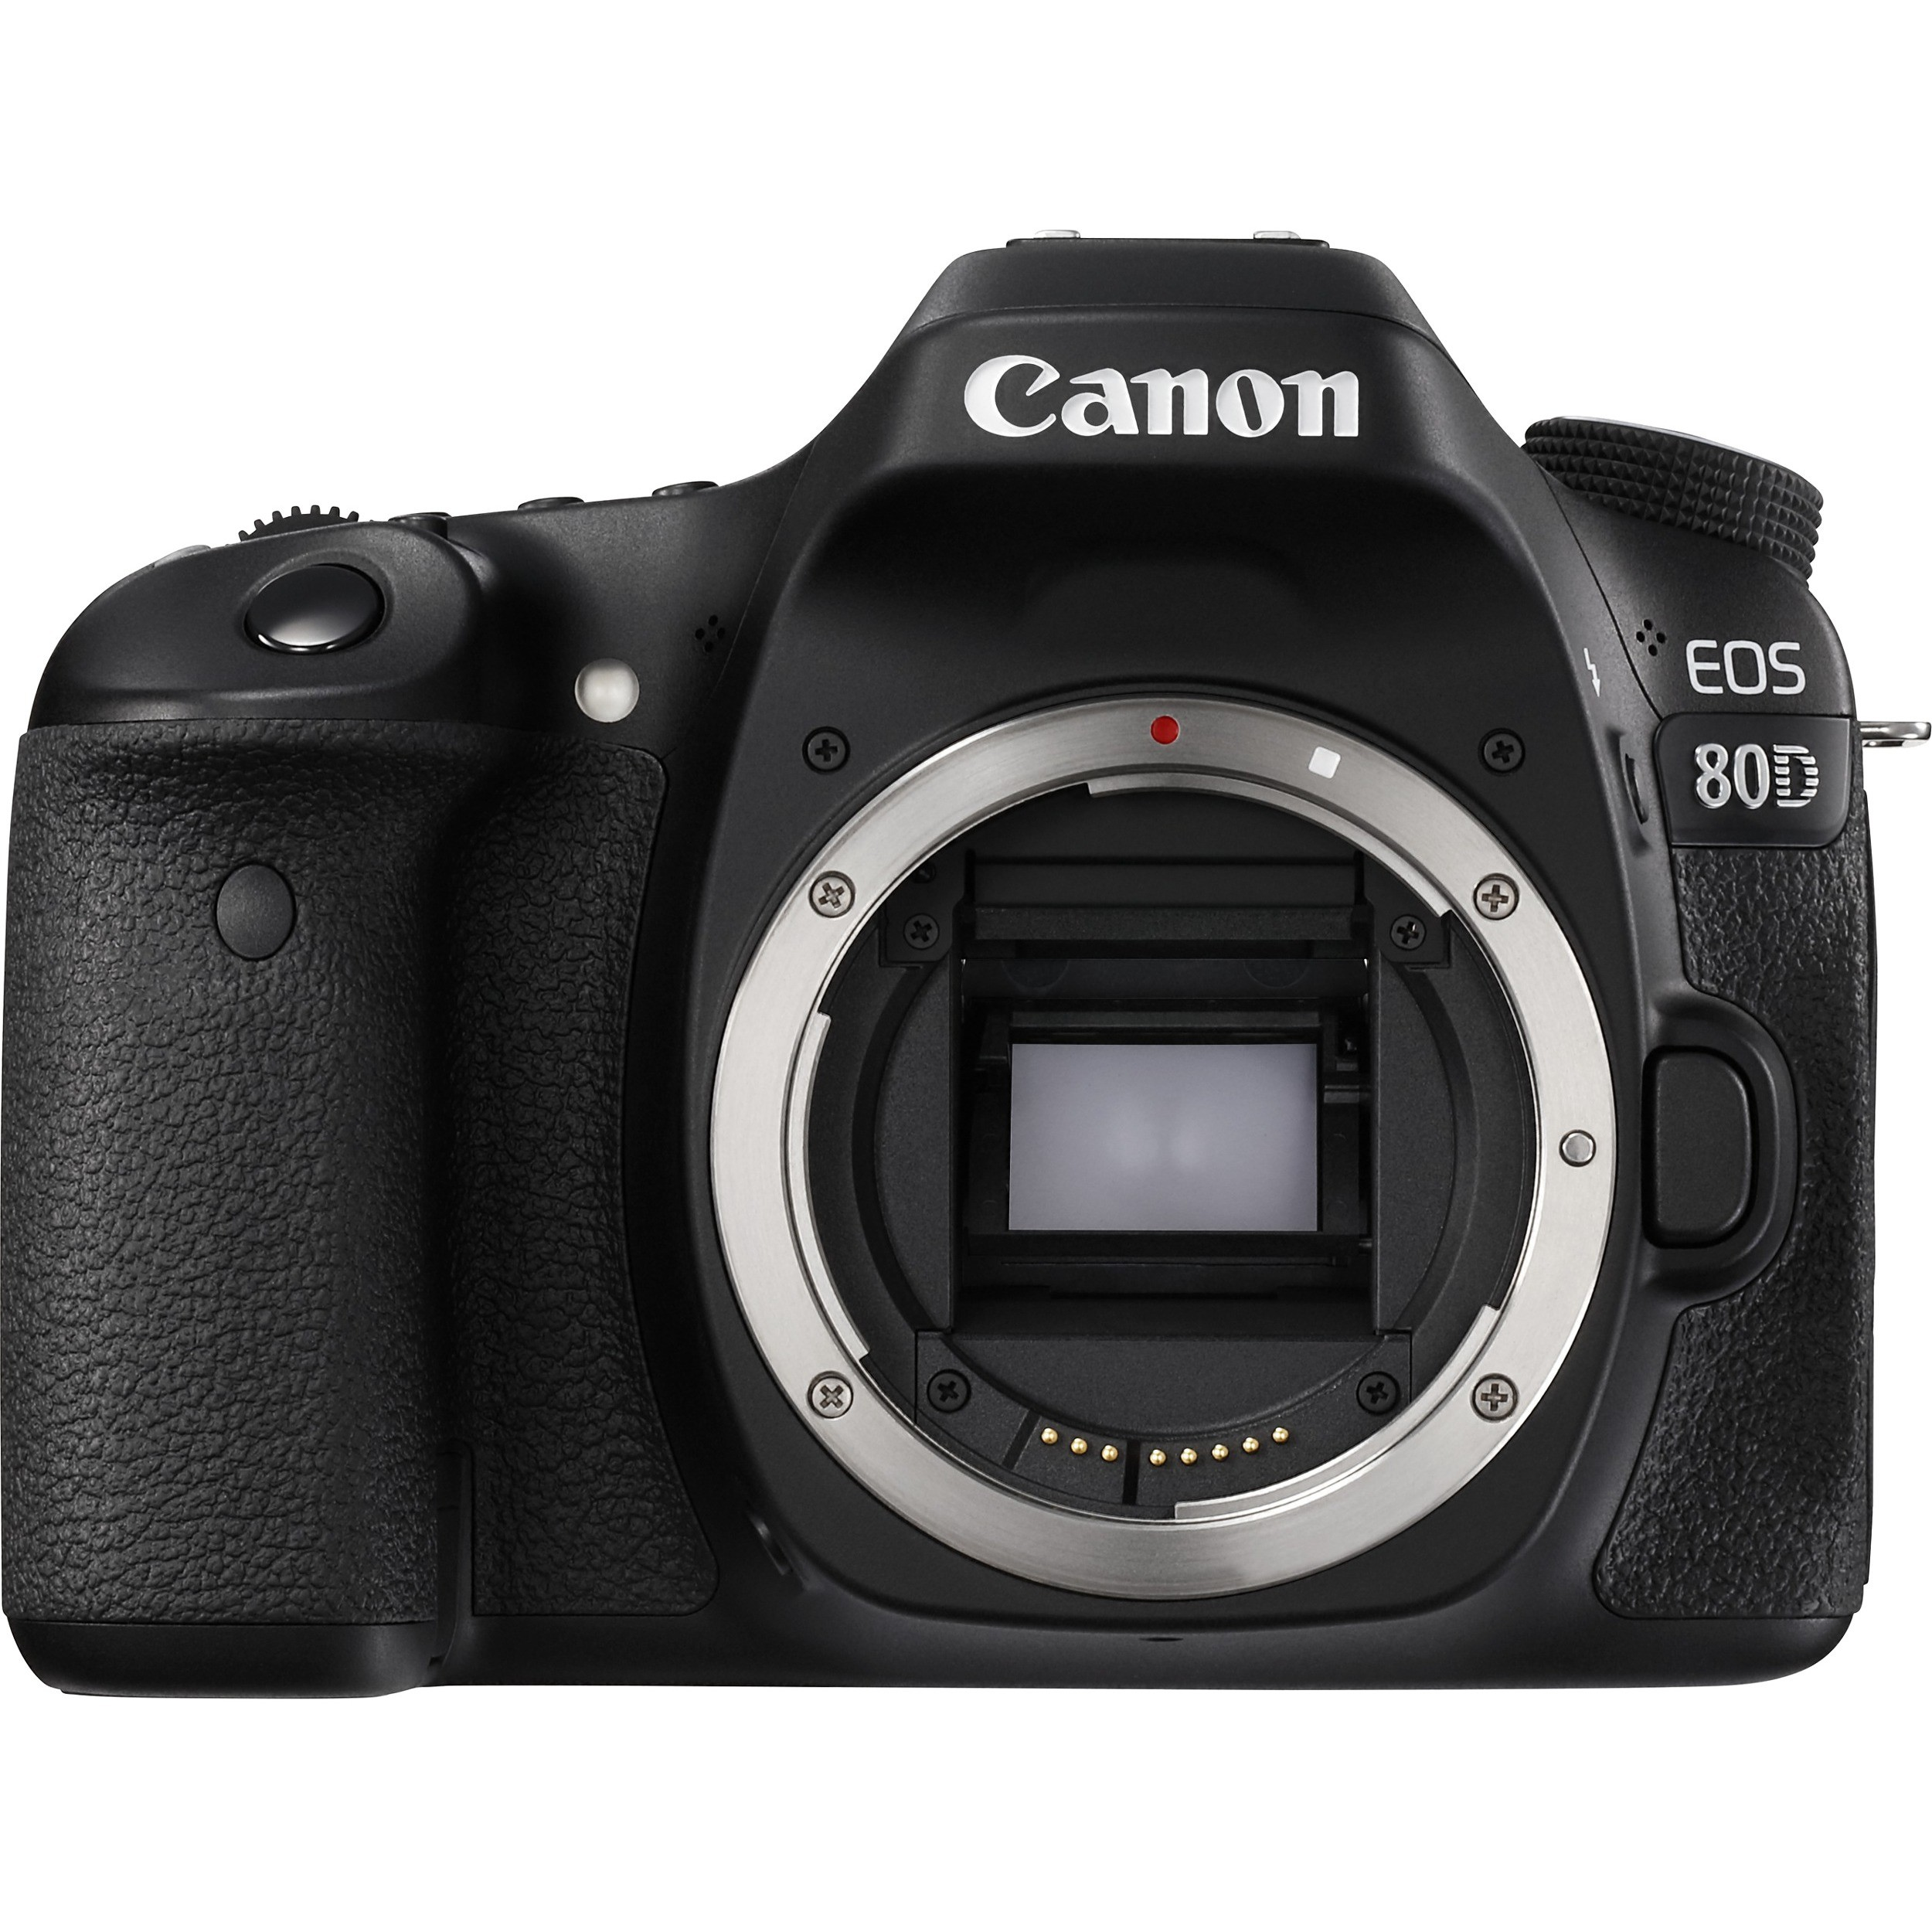 "Canon EOS 80D 24.2 Megapixel Digital SLR Camera Body Only - Black - 3"" Touchscreen LCD - 16:9 - E-TTL II - 6000 x 4000 Image - 1920 x 1080 Video - HDMI - PictBridge - HD Movie Mode - Wireless LAN"